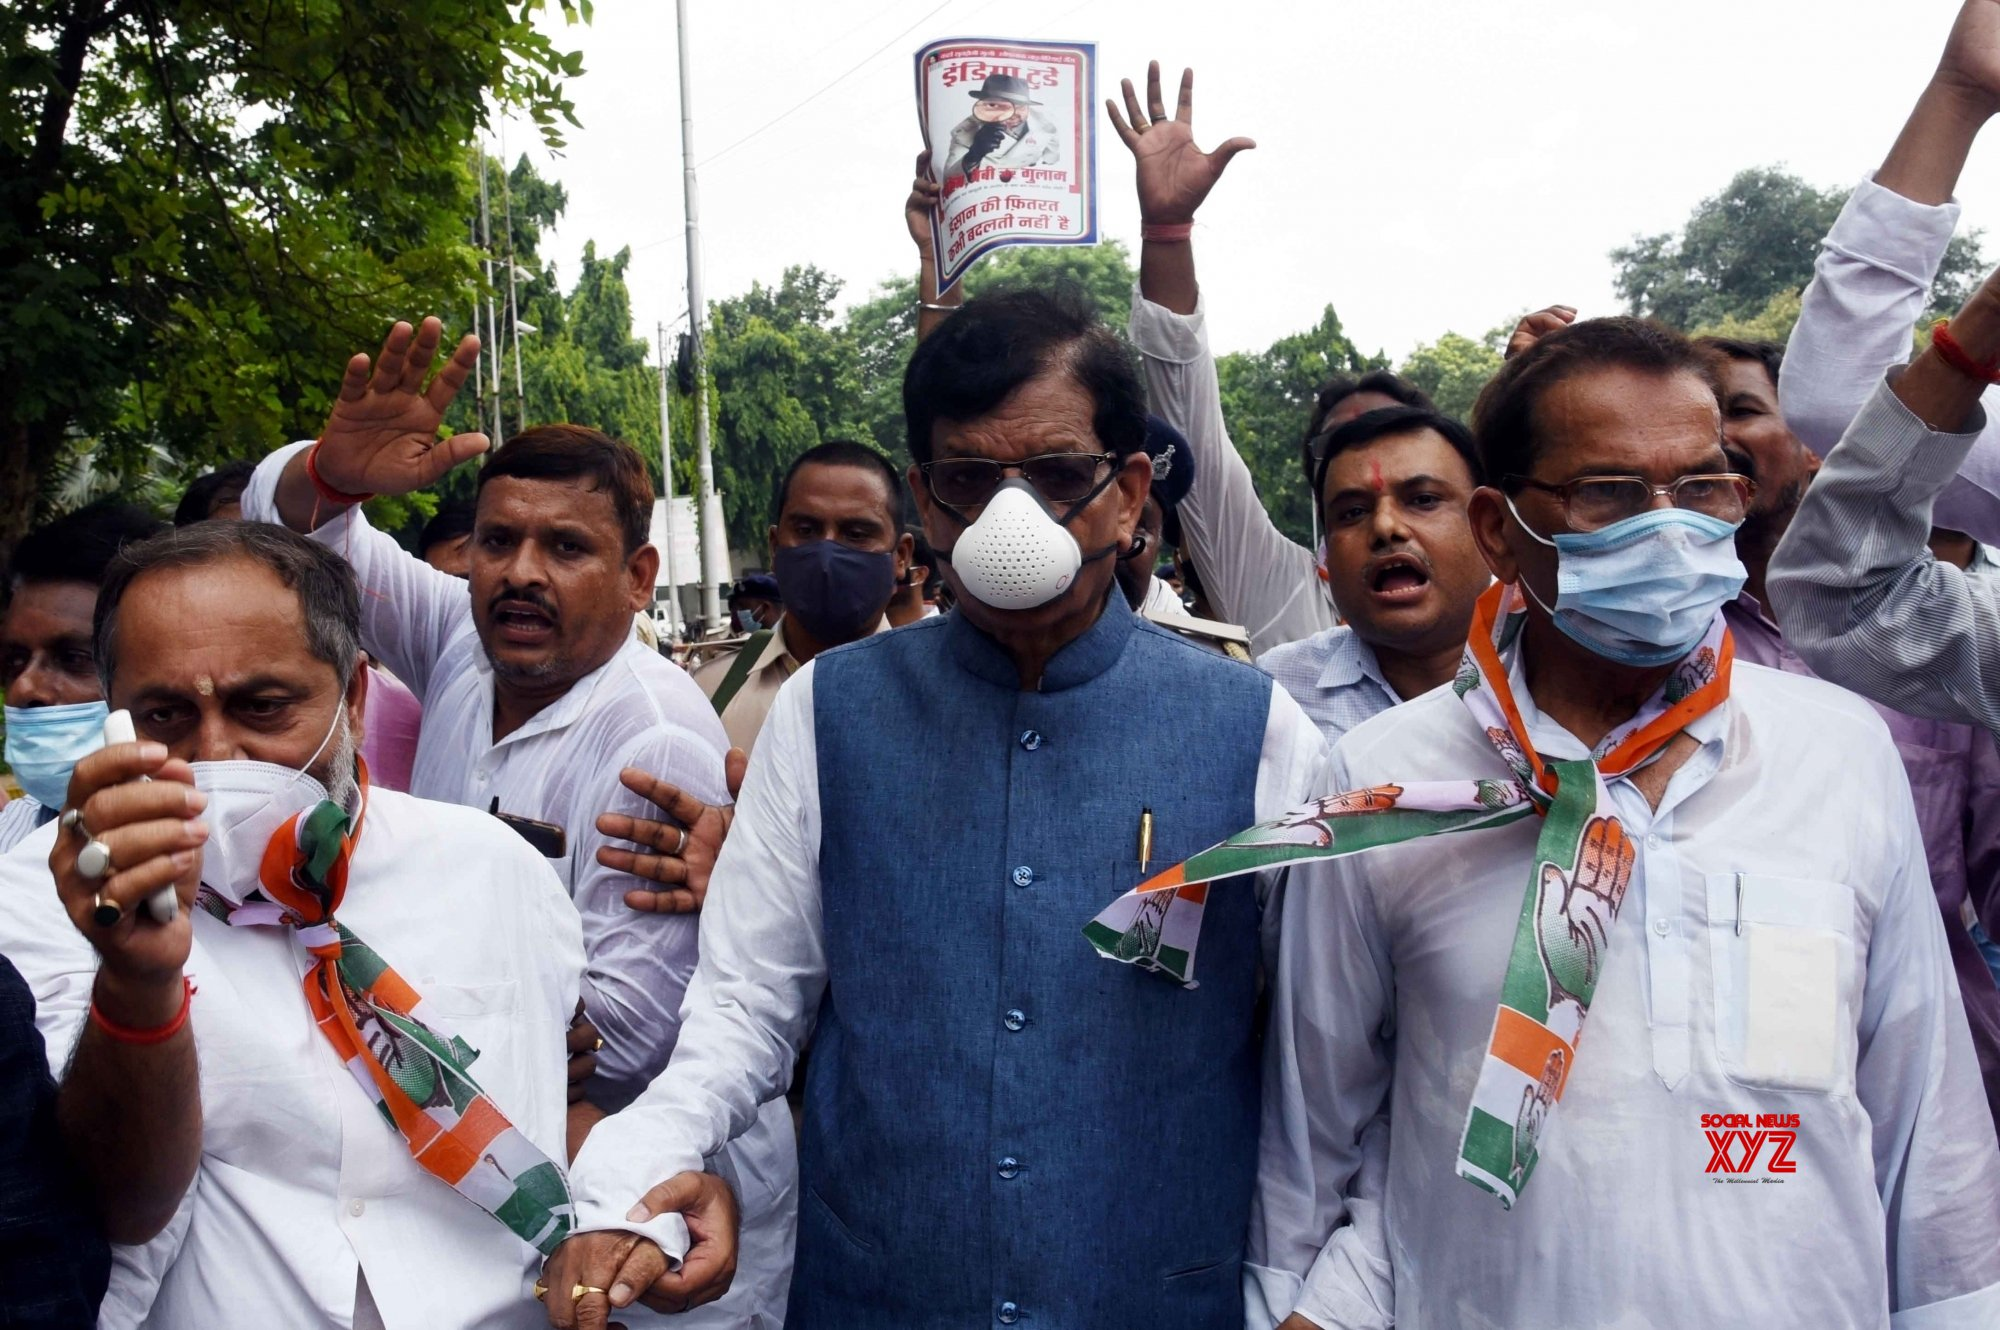 Patna: Bihar Congress president Madan Mohan Jha along with party supporters takeout Raj Bhavan protest march over the Pegasus Project issue, in Patna. #Gallery